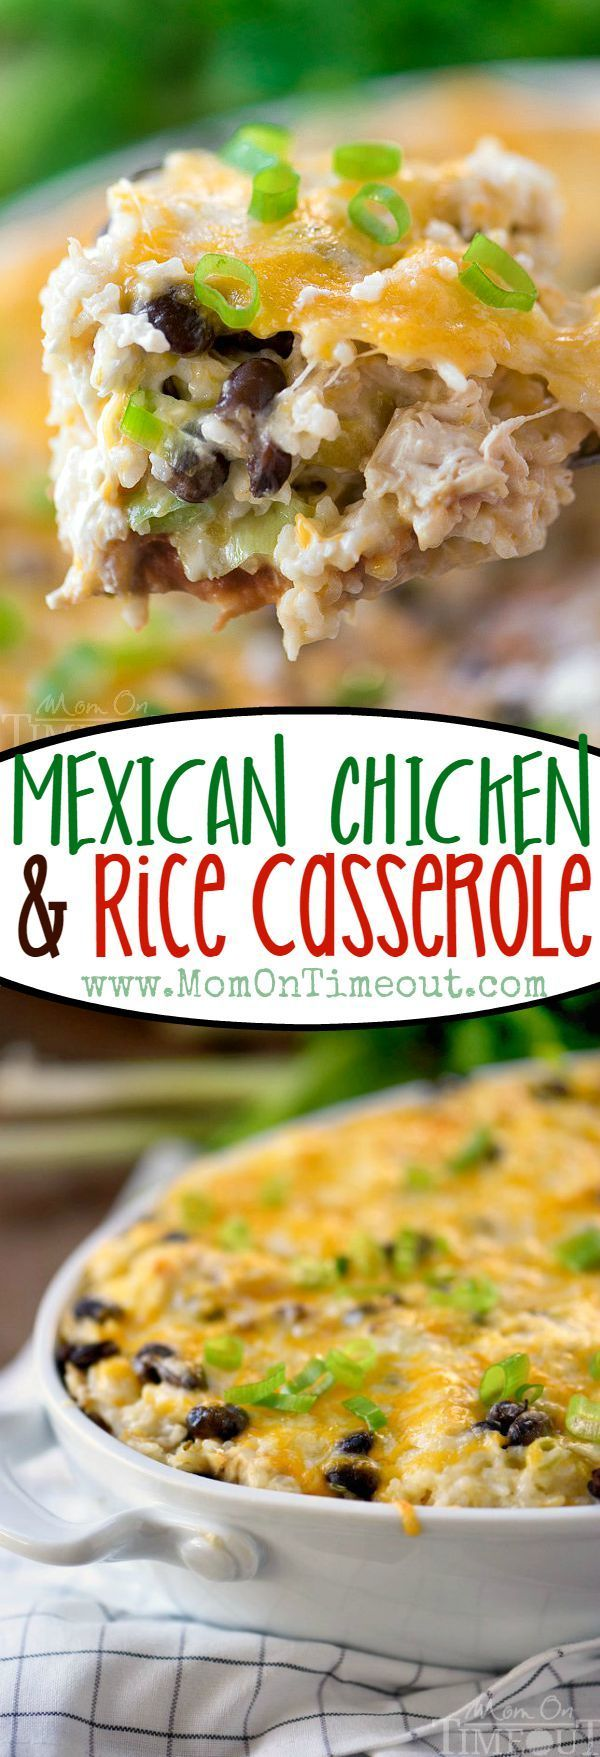 Like Mexican food? Then you've gotta try this Mexican Chicken and Rice Casserole! Full of classic Mexican flavors in an easy weeknight package! #oldelpaso